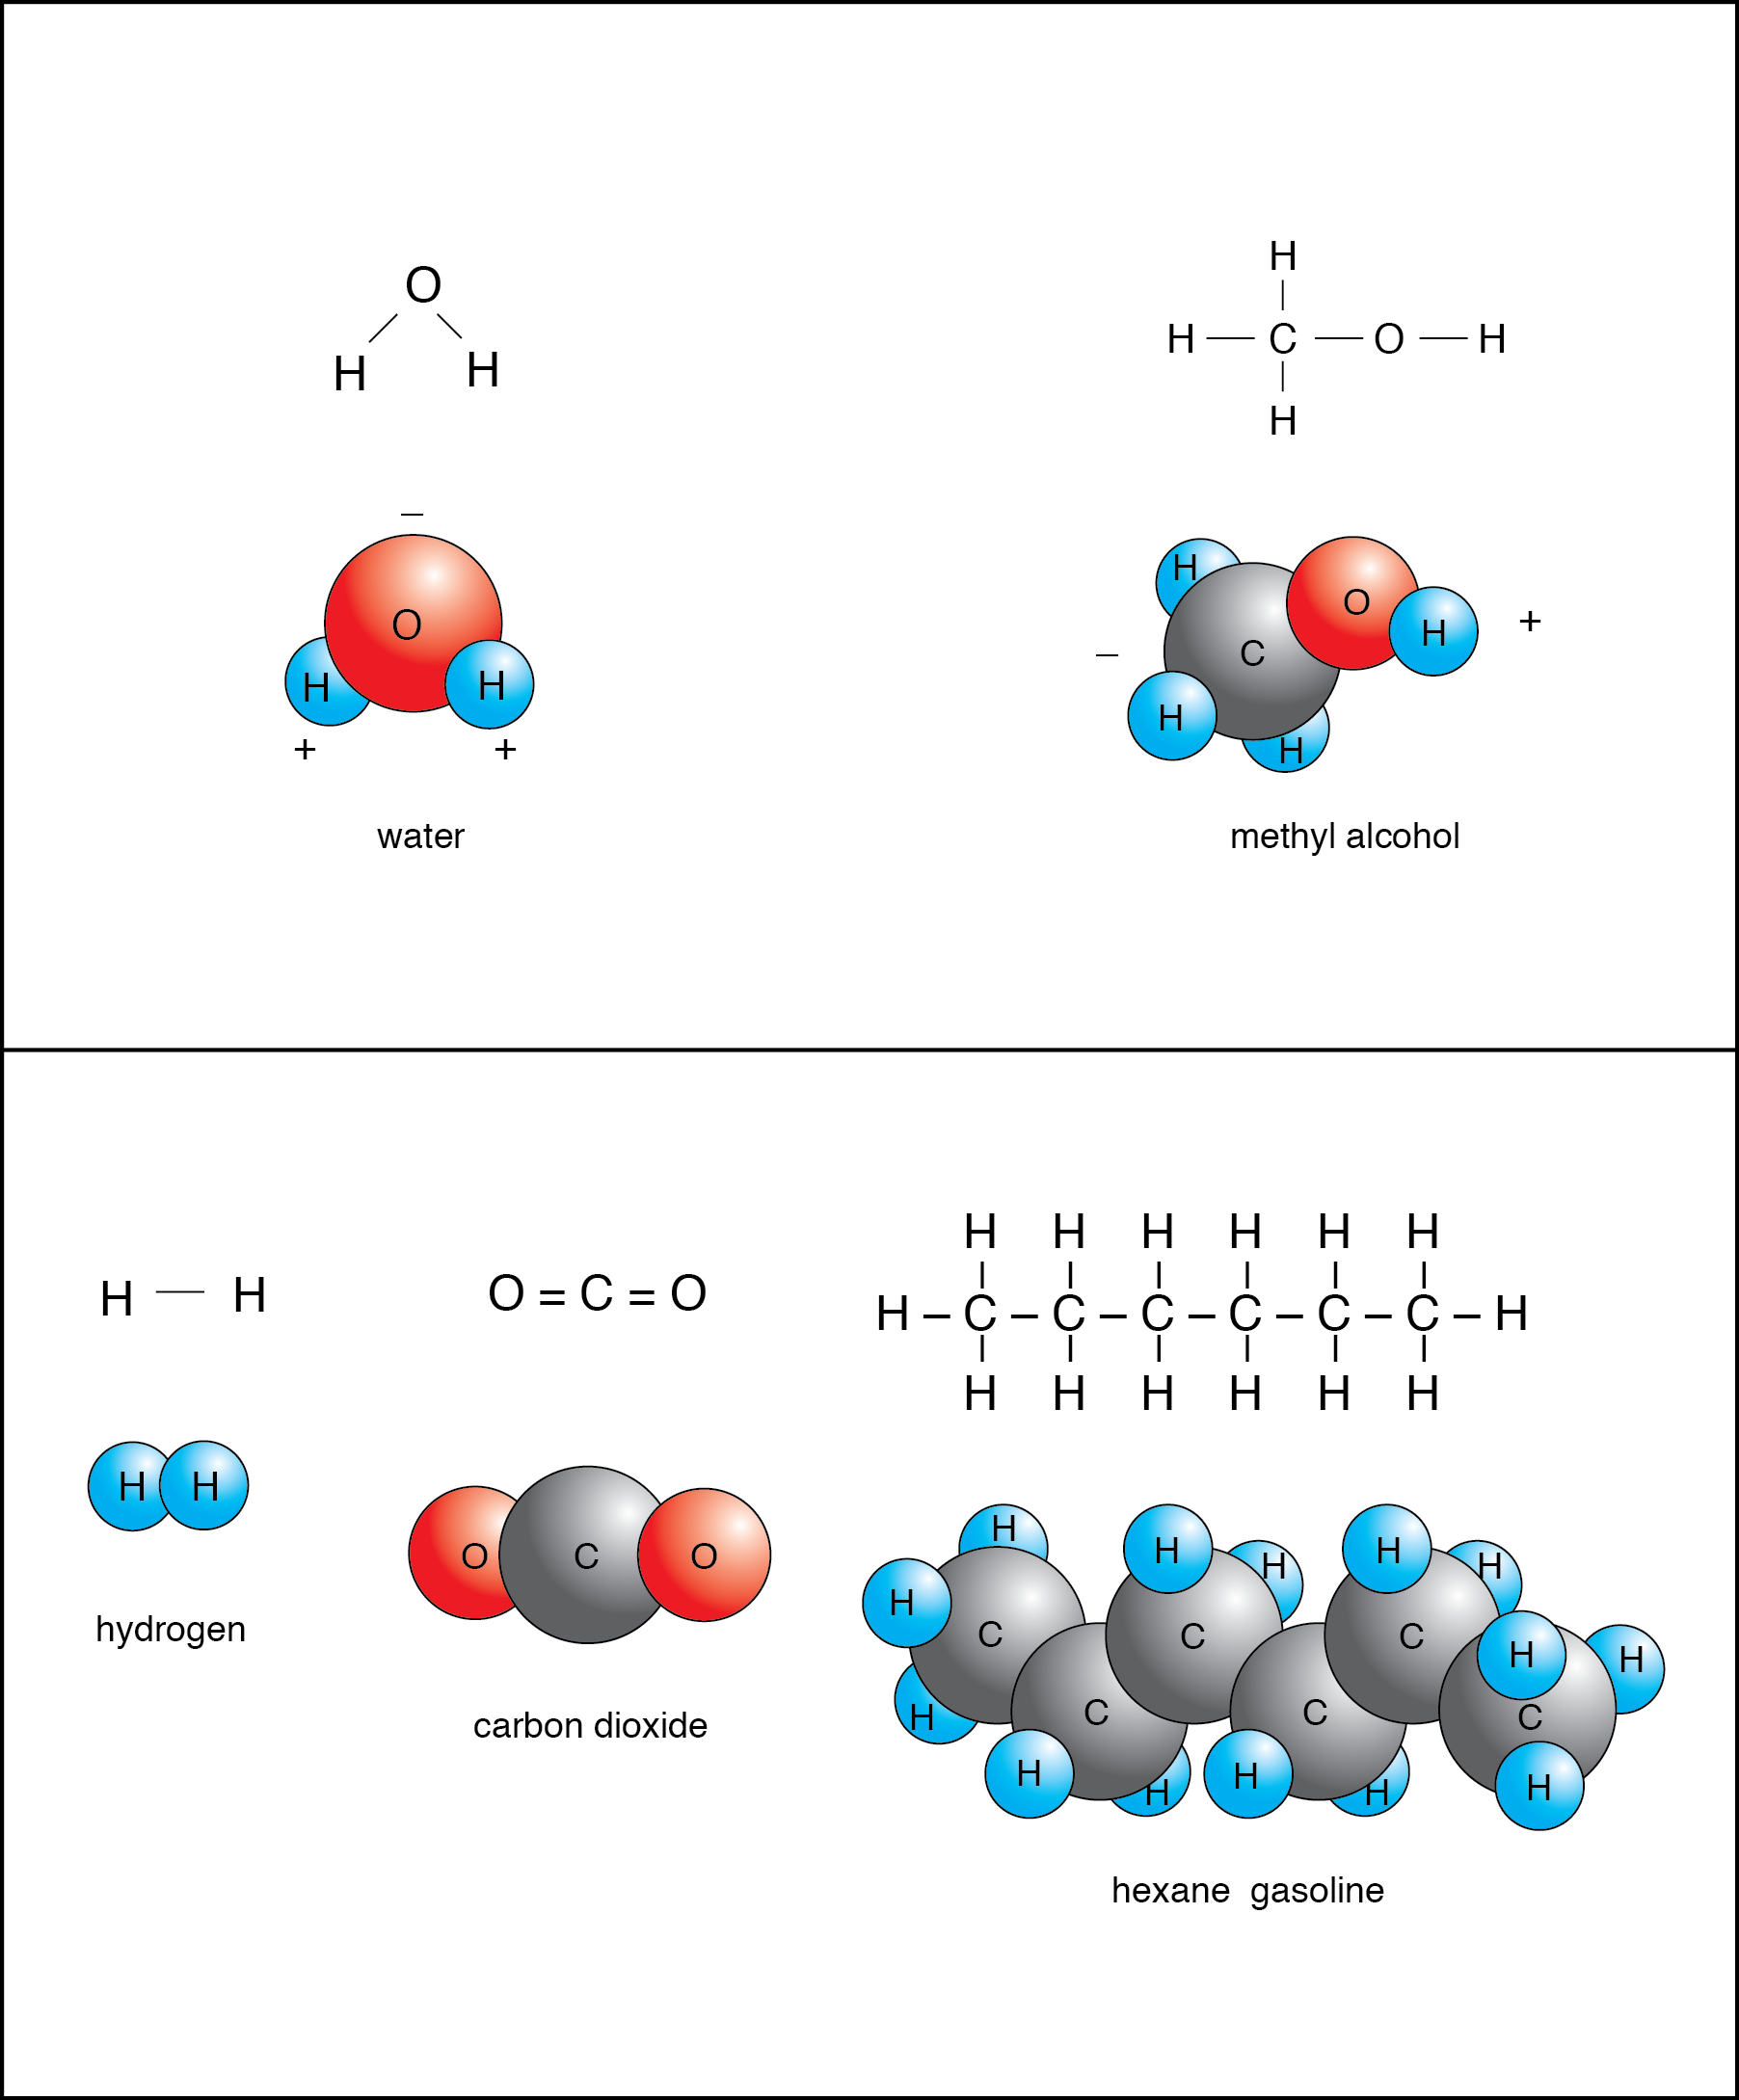 polar or nonpolar bonds Types of Covalent Bonds: Polar and Nonpolar | manoa.hawaii.edu ...